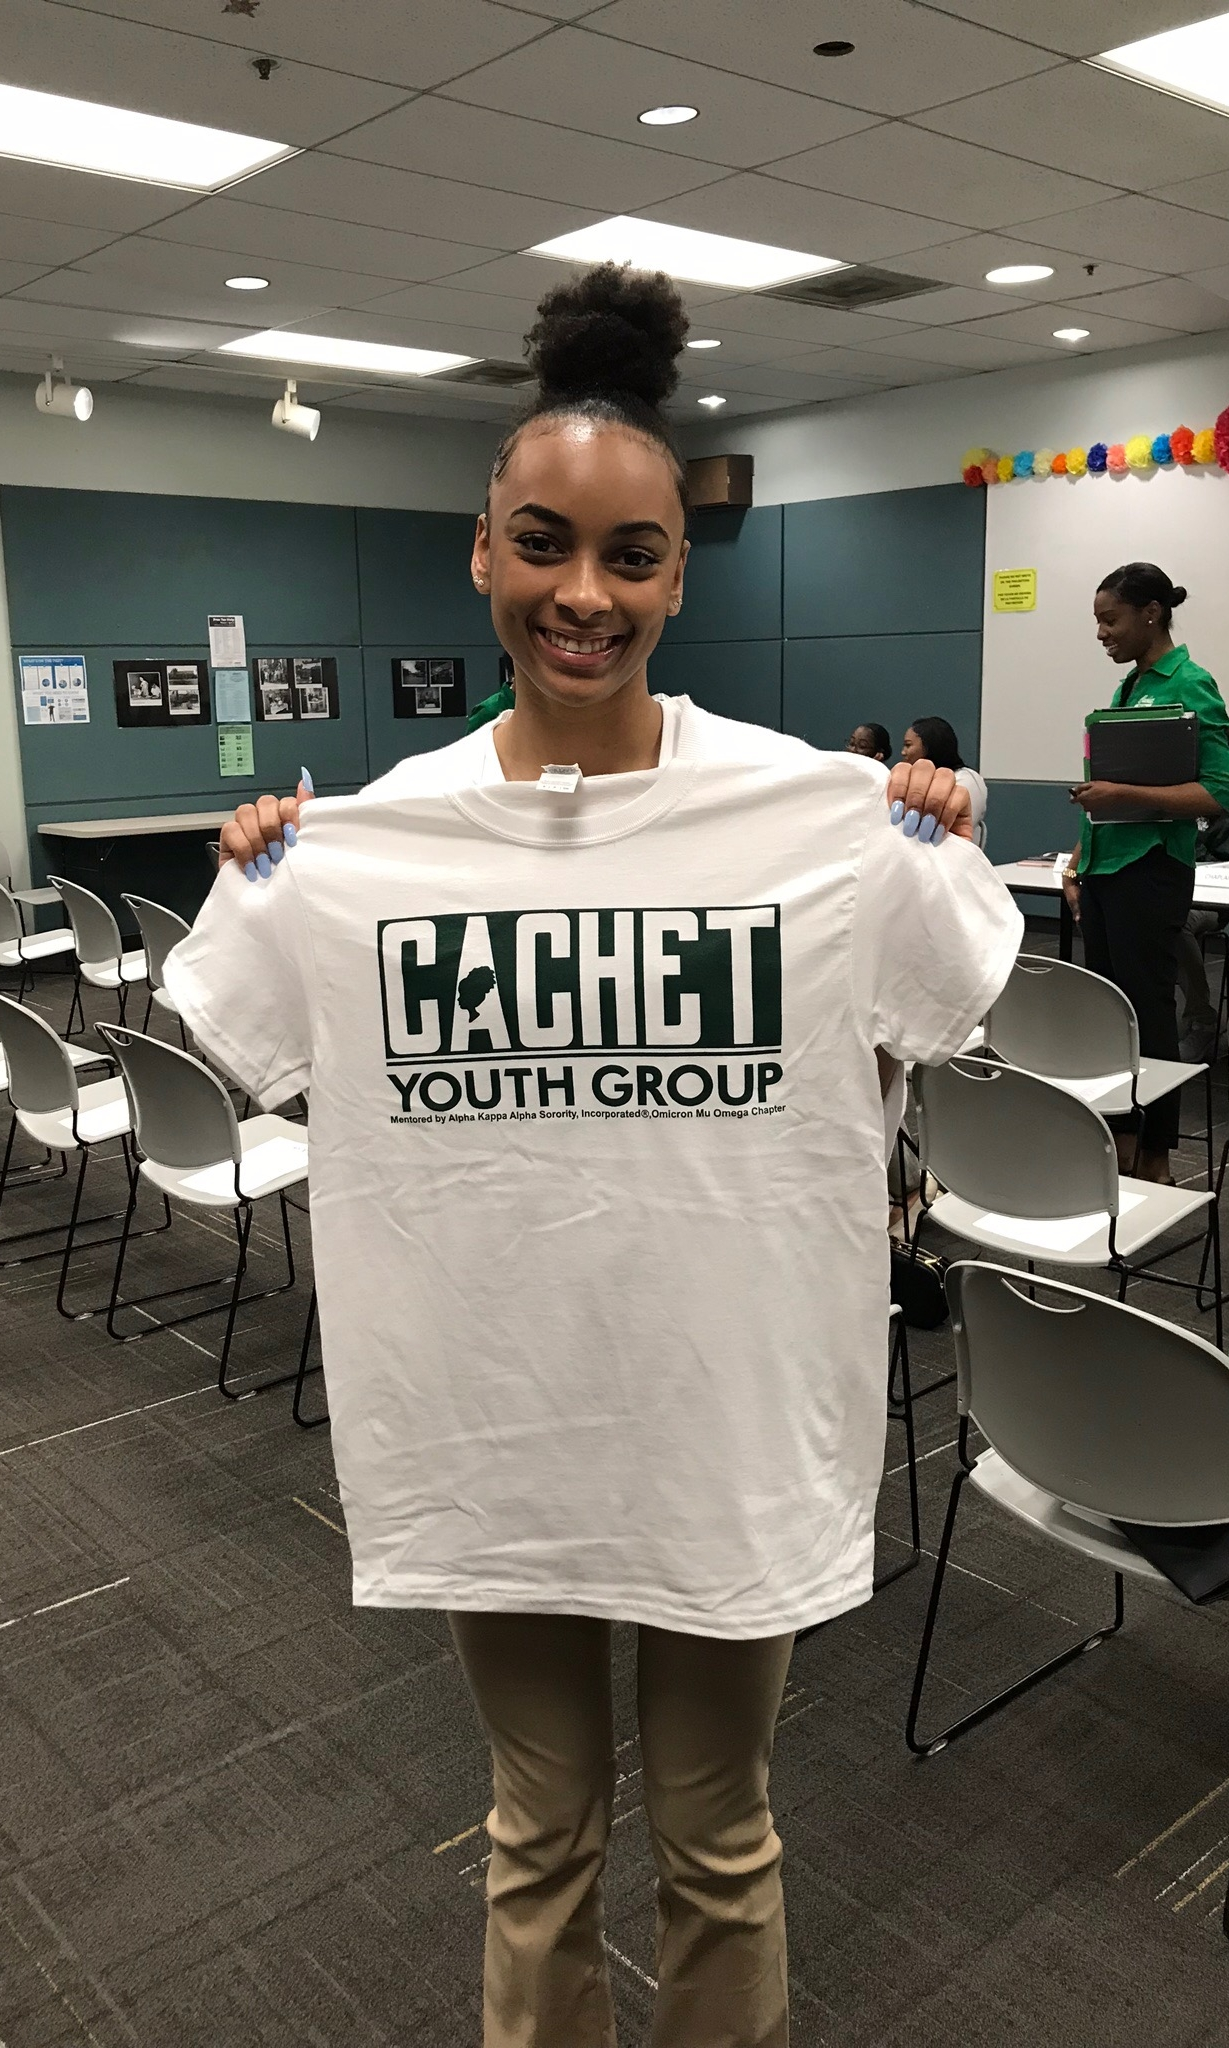 QUALIFICATIONS TO JOIN CACHET: - • Must be in grades 7-12• Must have a grade average of B or better• Must submit (2) letters of recommendations from a school counselor, teacher, minister, employer, adult neighbor or a member of Alpha Kappa Alpha Sorority Incorporated• Annual dues for all members and one time membership fee for new members.